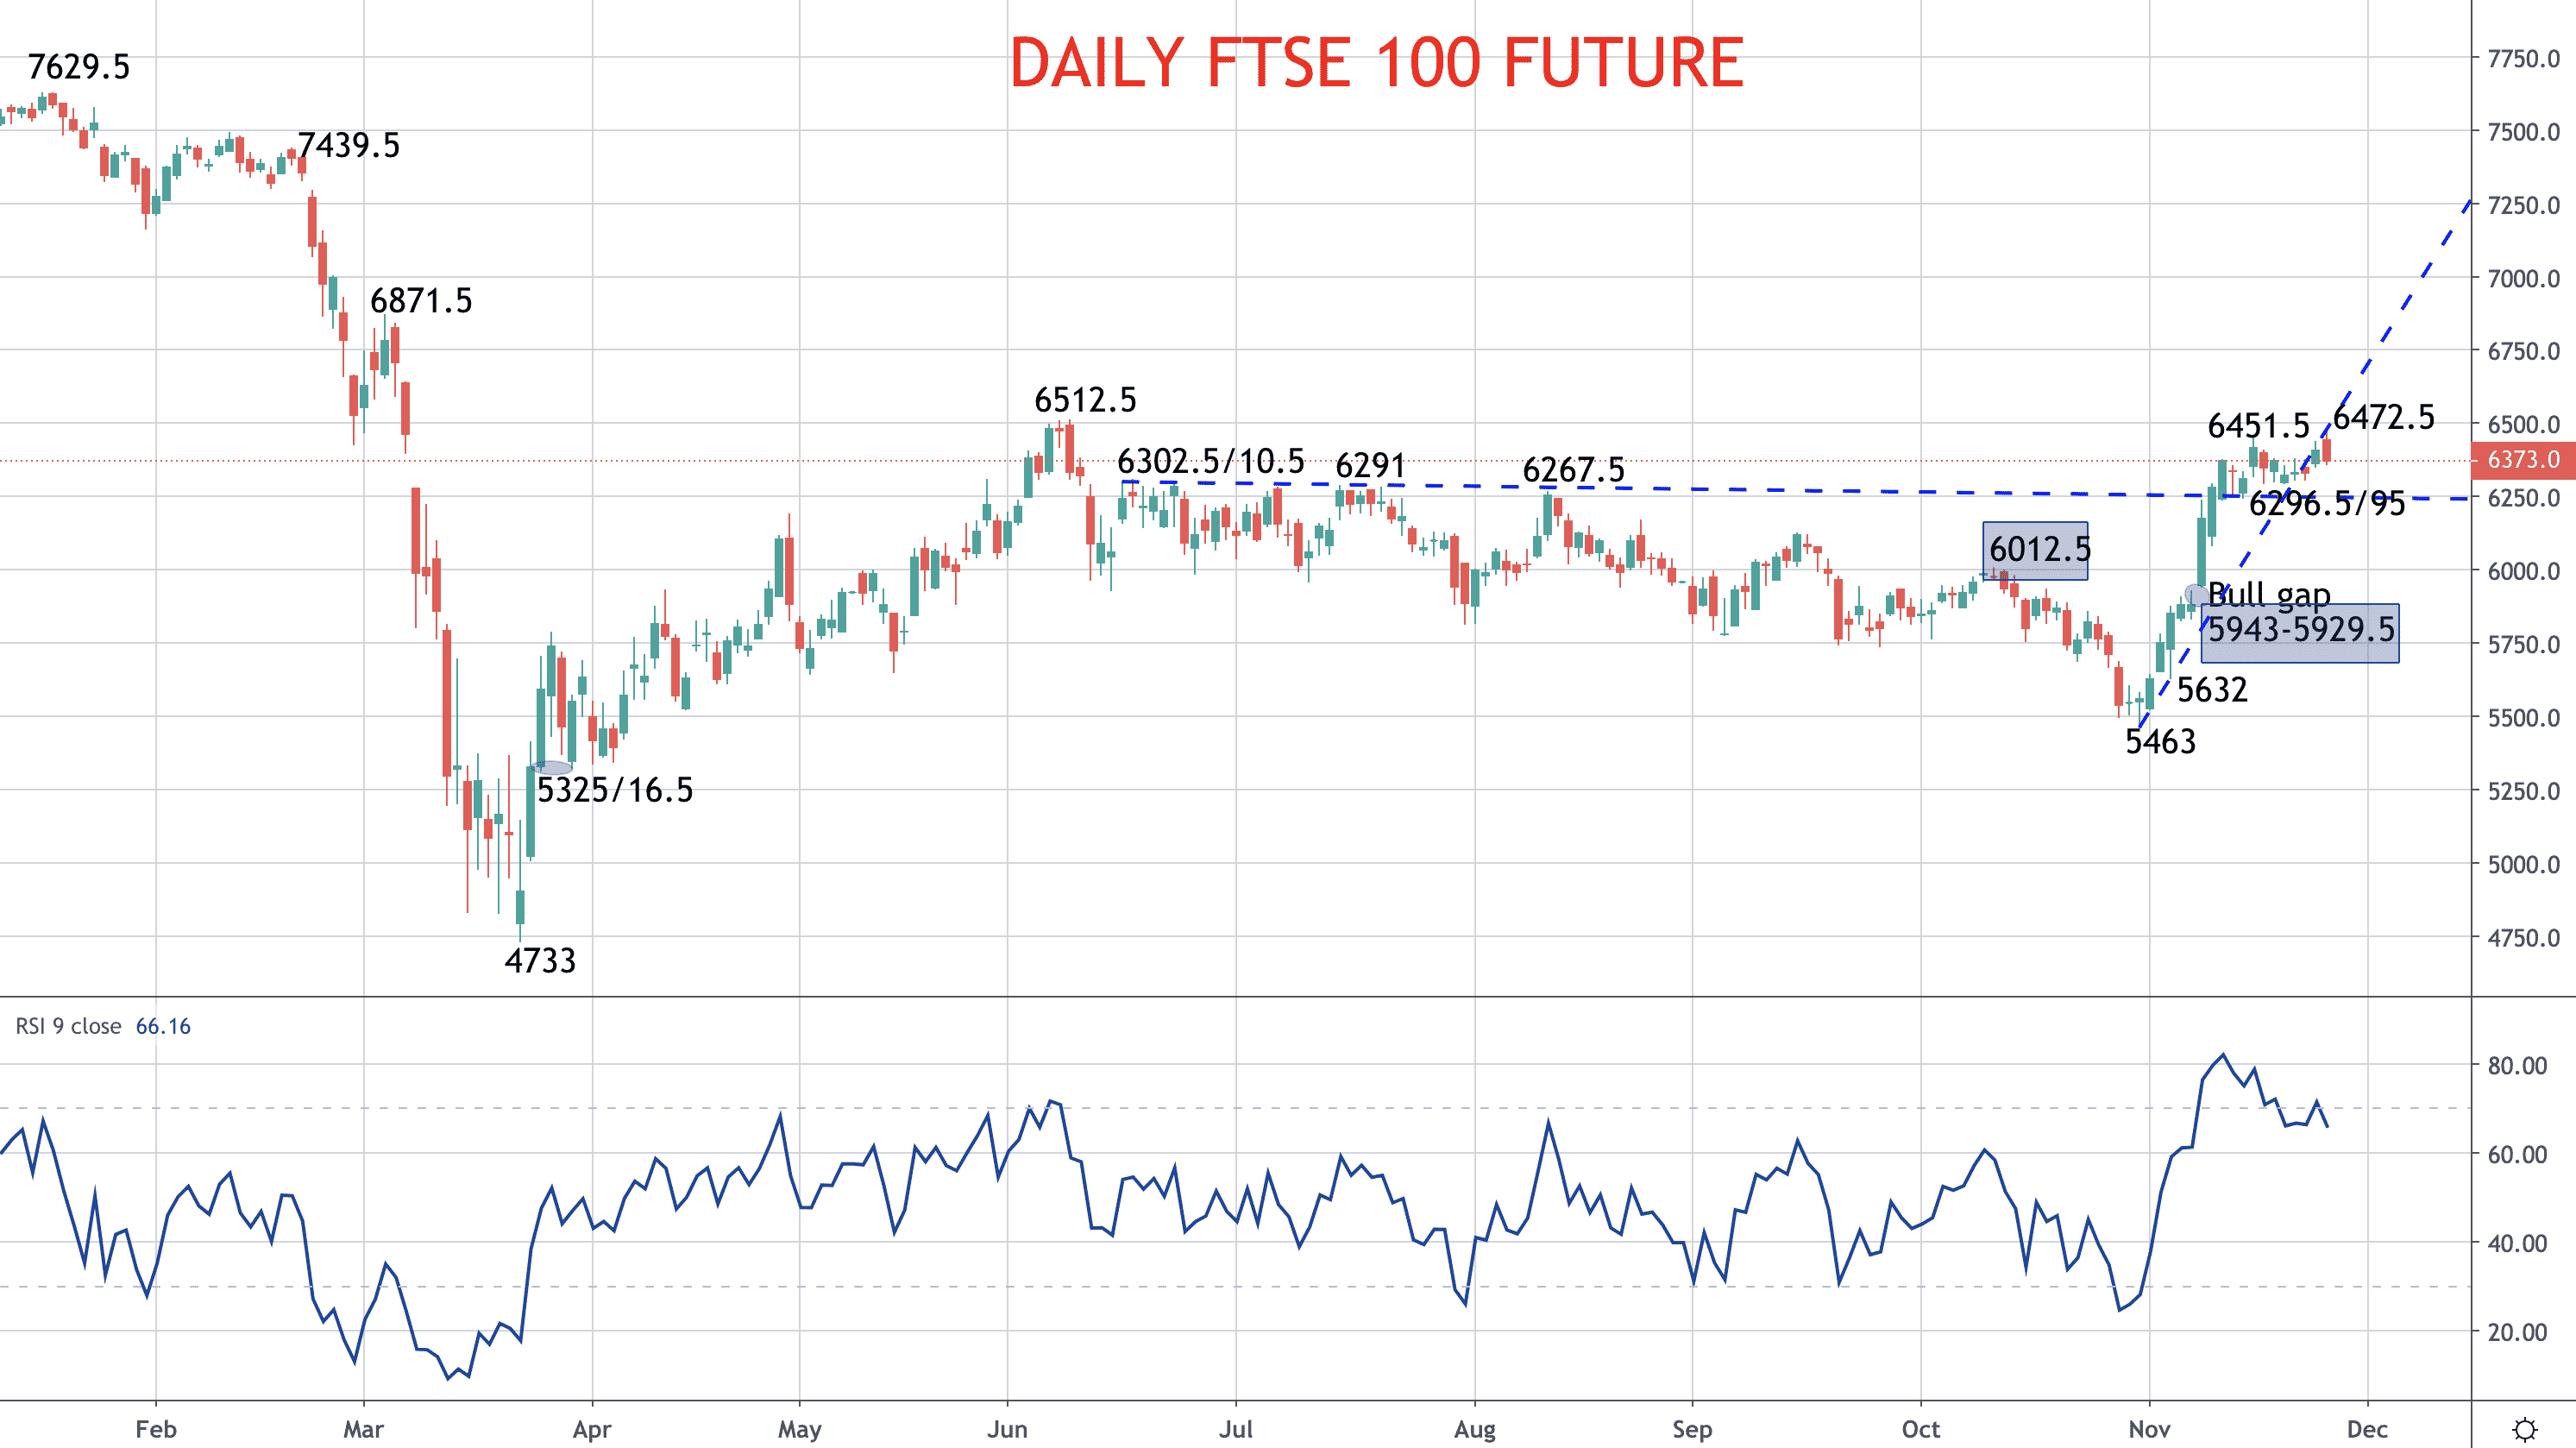 Stocks stay very bullish into Thanksgiving – S&P 500 and FTSE 100 forecast Image